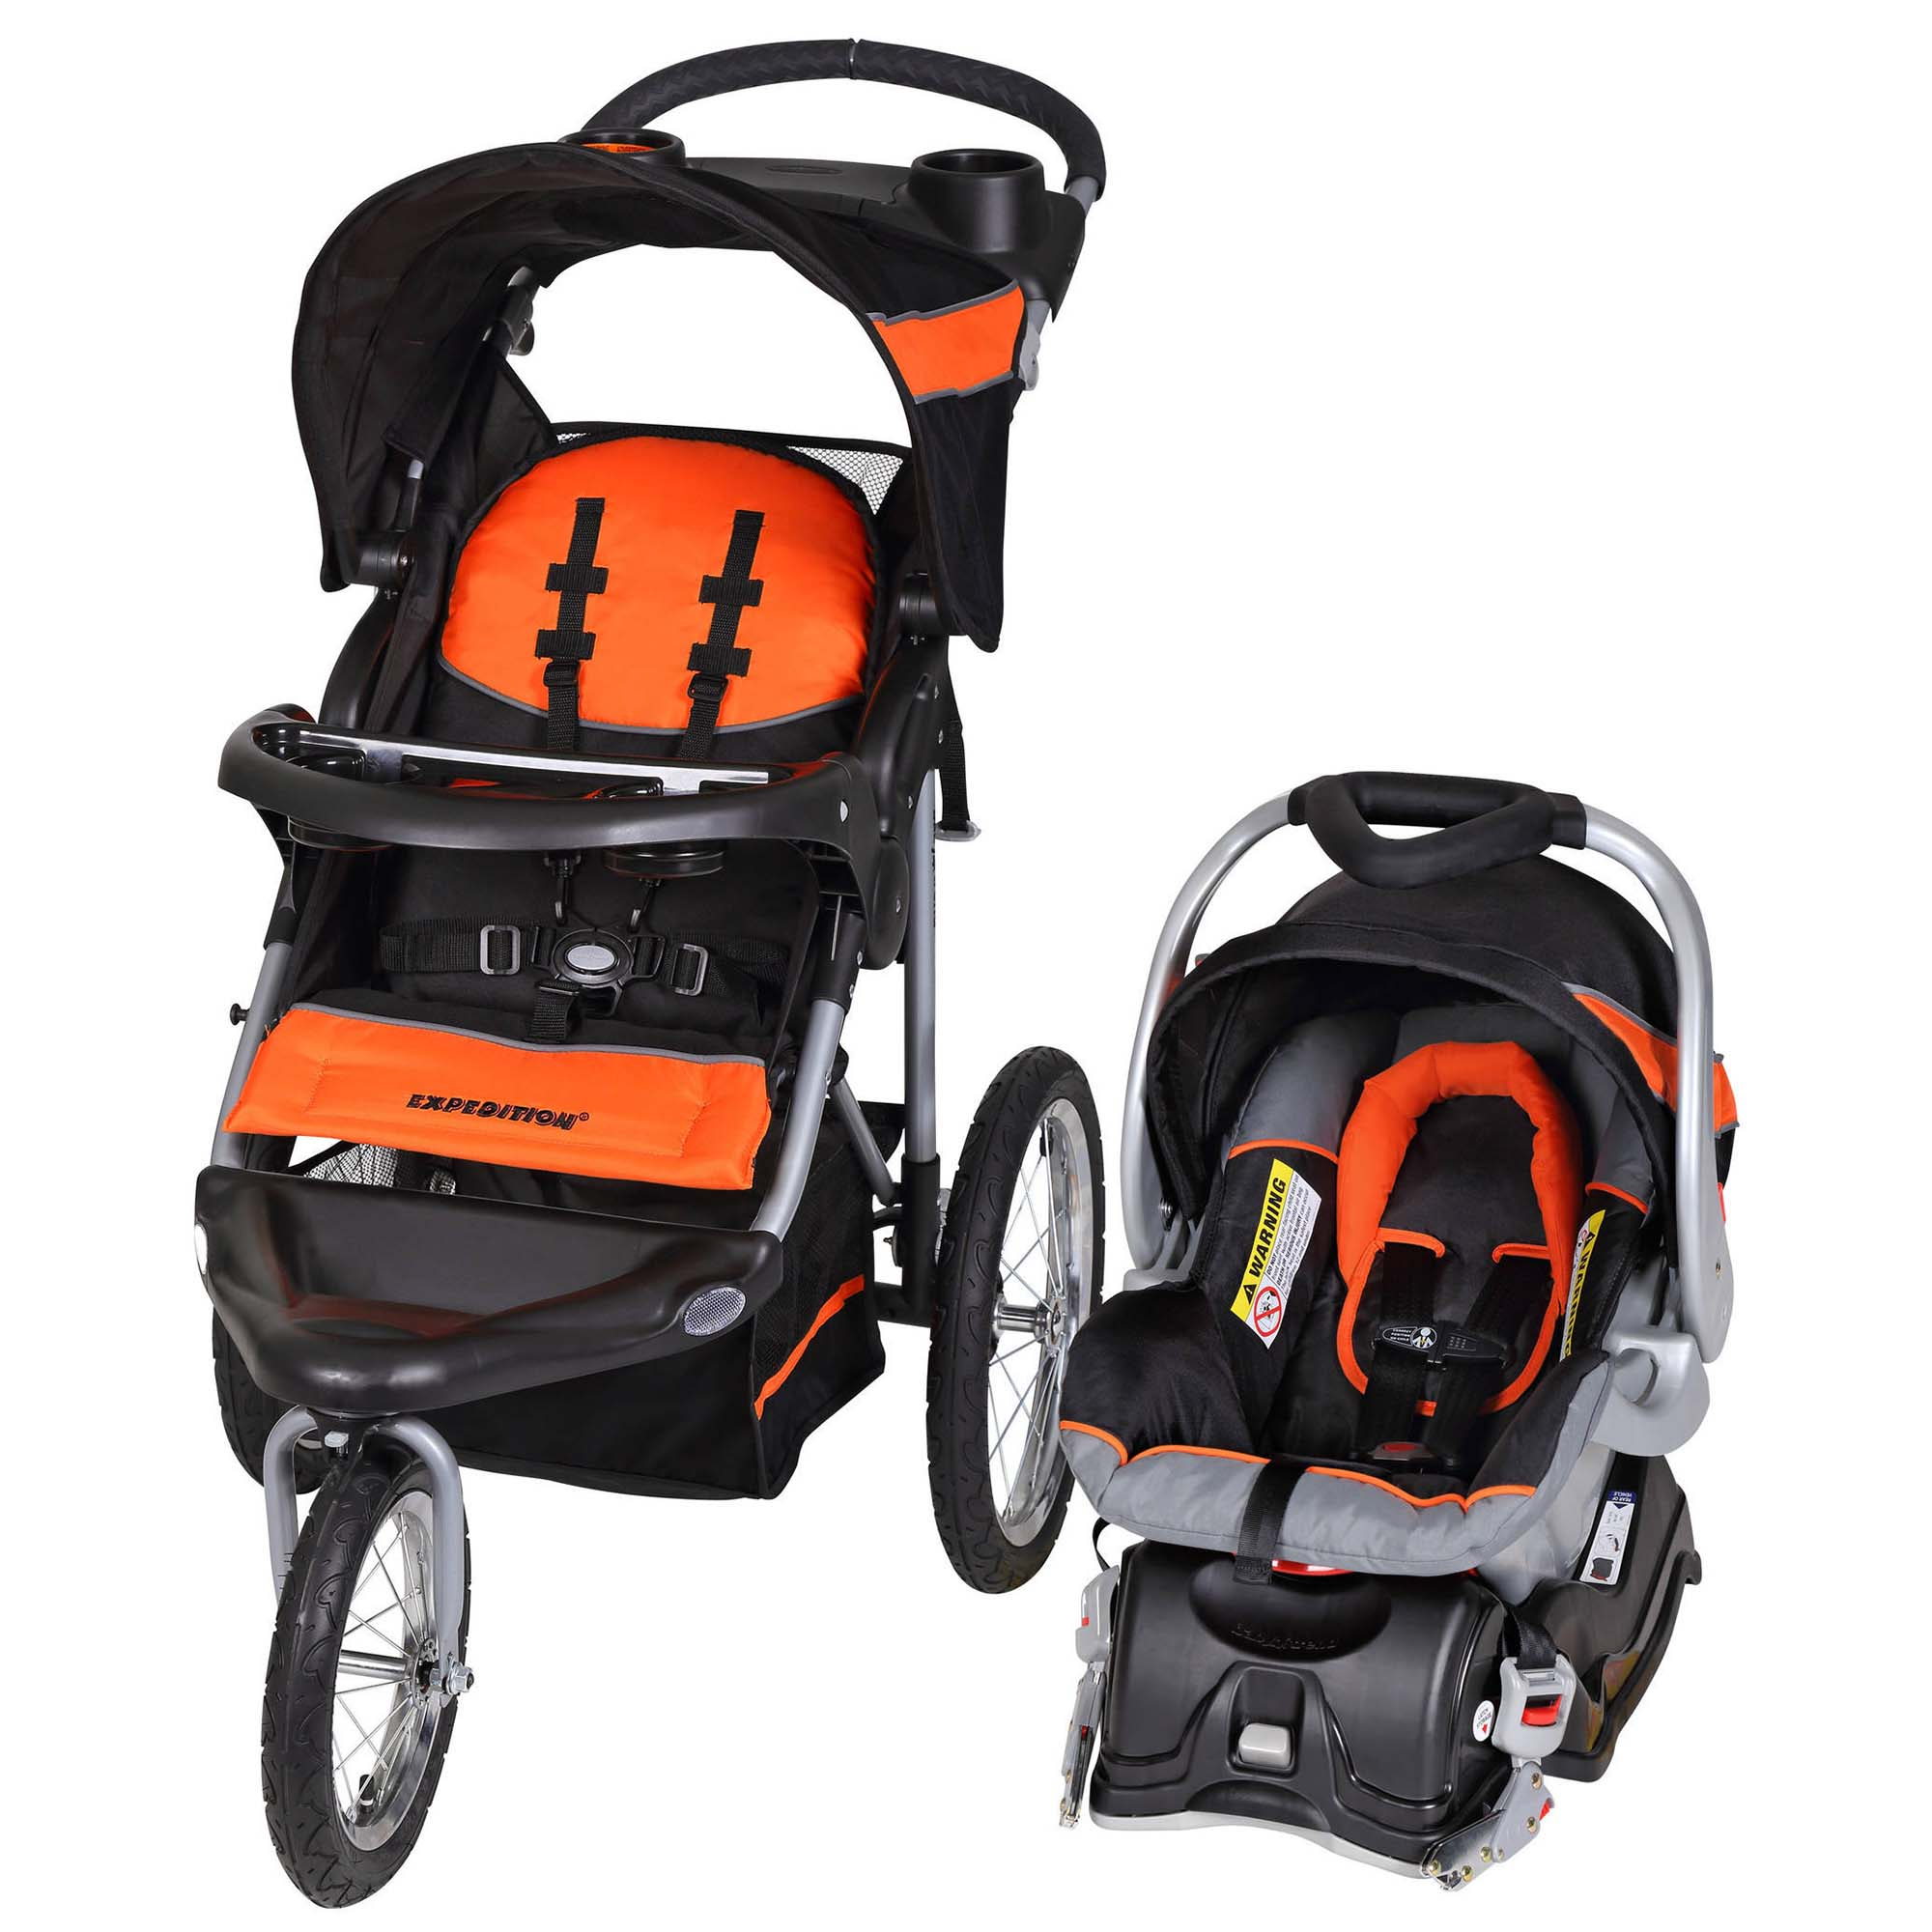 Travel Car Seat: Baby Trend Expedition Travel System With Stroller & Car